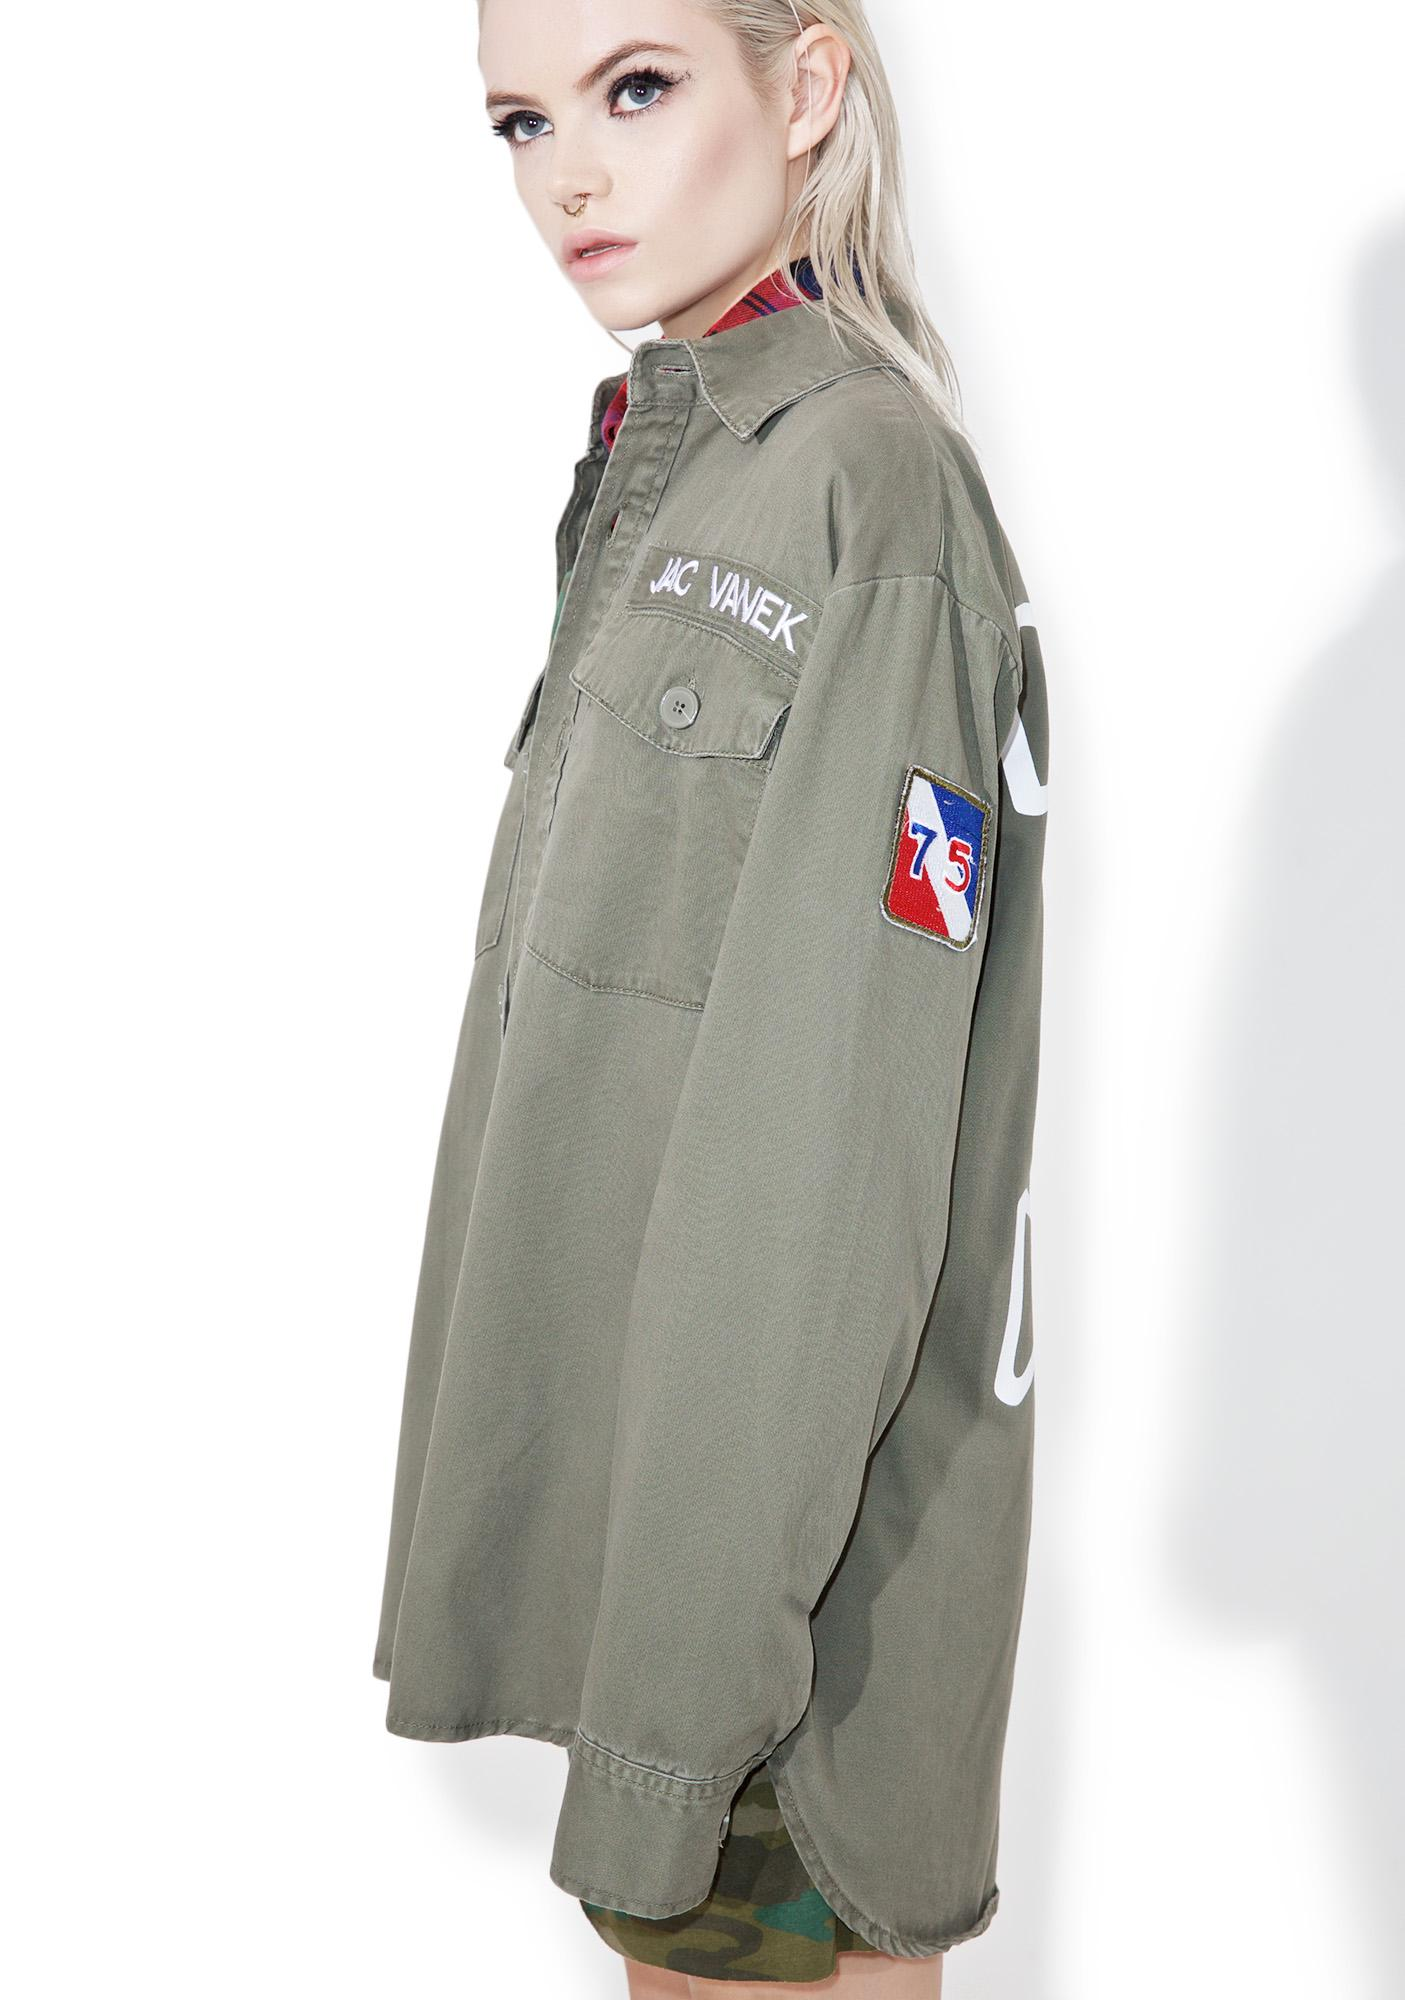 Jac Vanek Don't Be A Dick Army Jacket